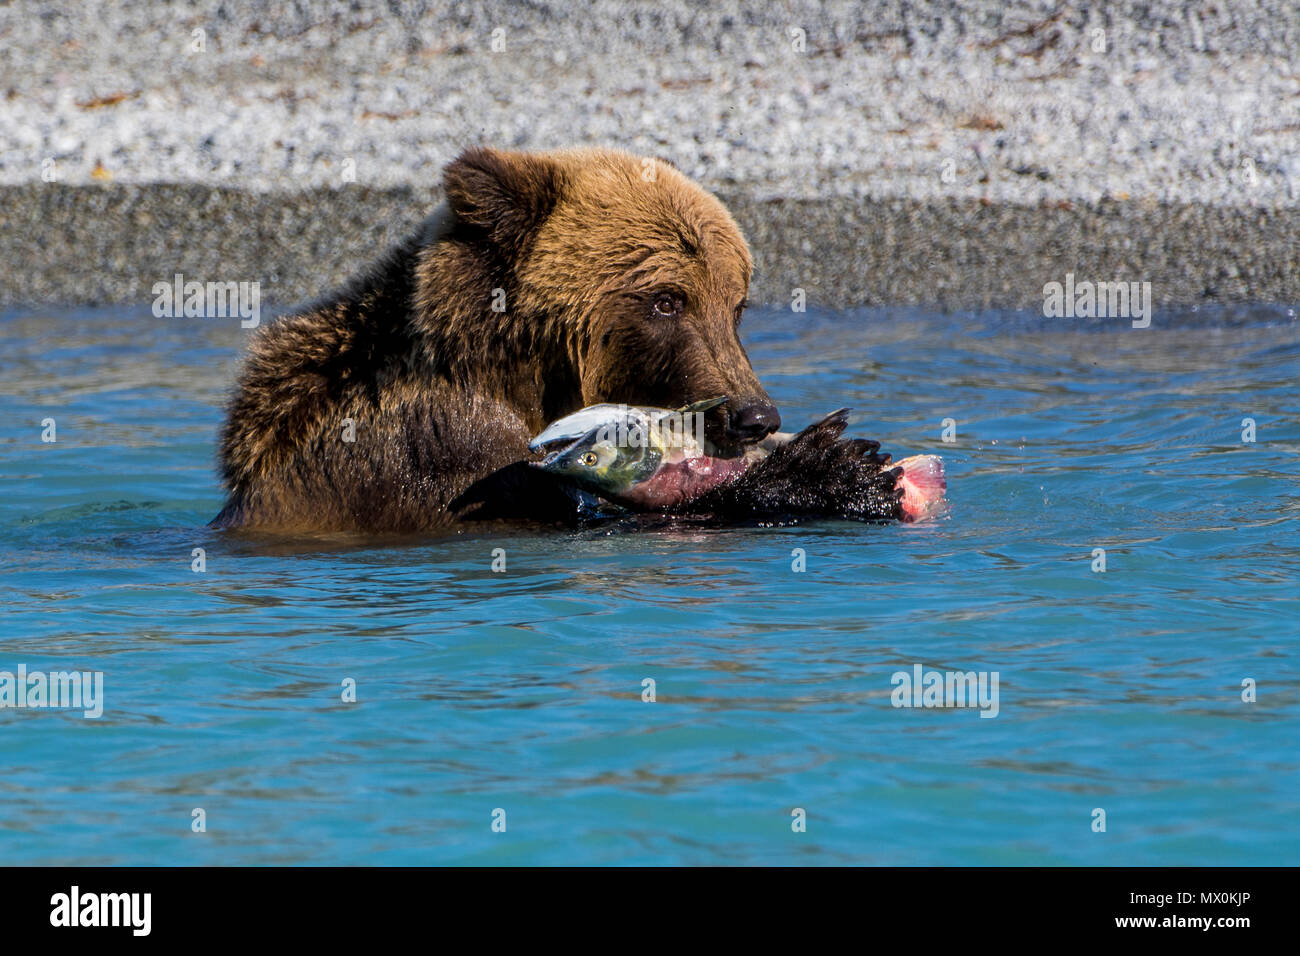 Grizzly bear (brown bear) (Ursus arctos) at Crescent Lake, Lake Clark National Park and Preserve, Alaska, United States of America, North America - Stock Image